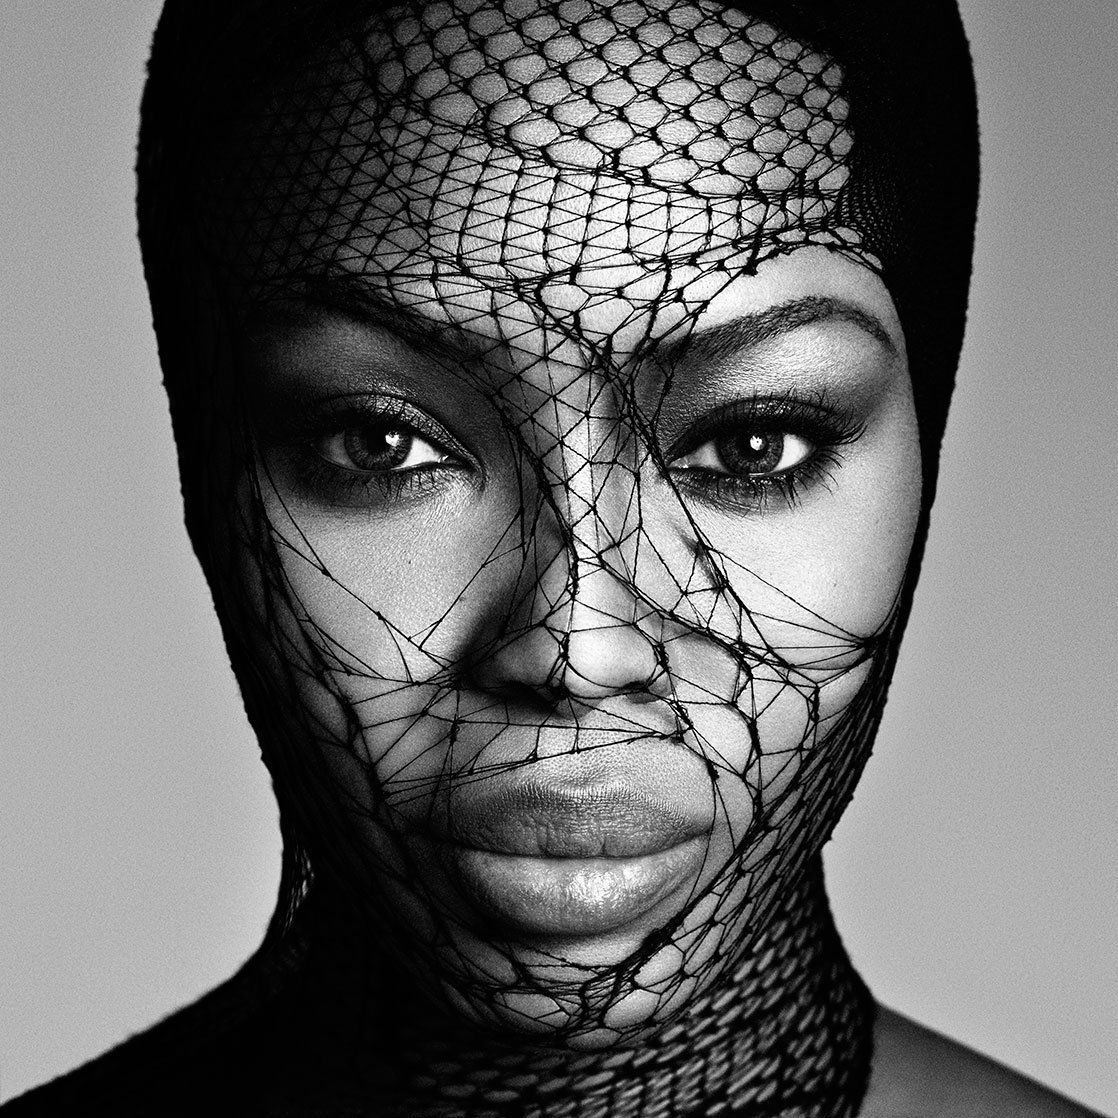 Campbell naomi stars in photography exhibition exclusive photo